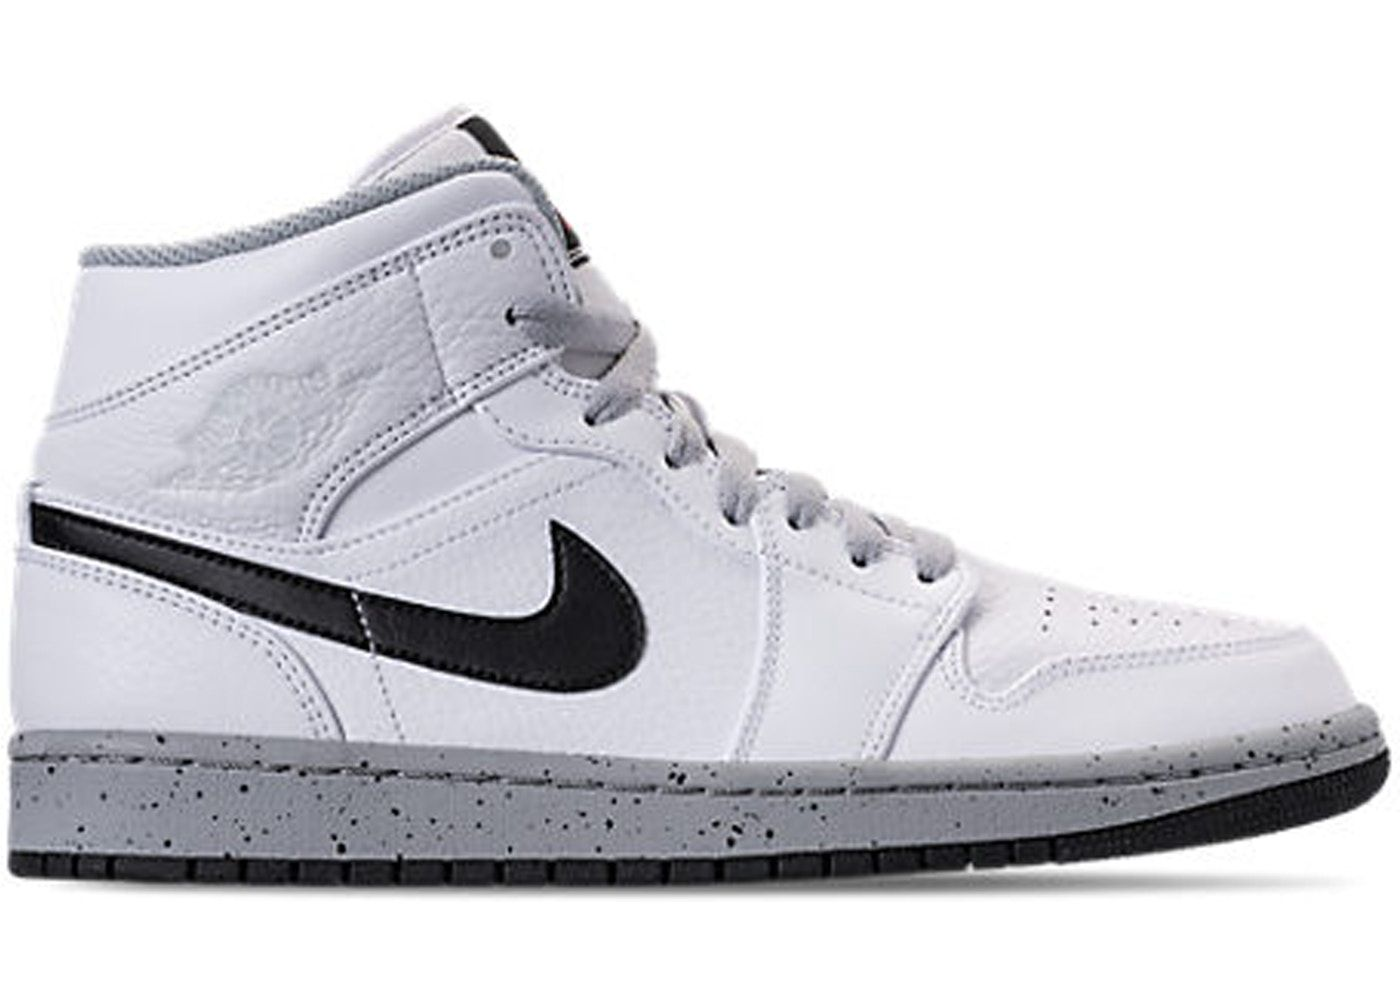 Check out the Jordan 1 Mid White Cement available on StockX 4a51e7f6a8